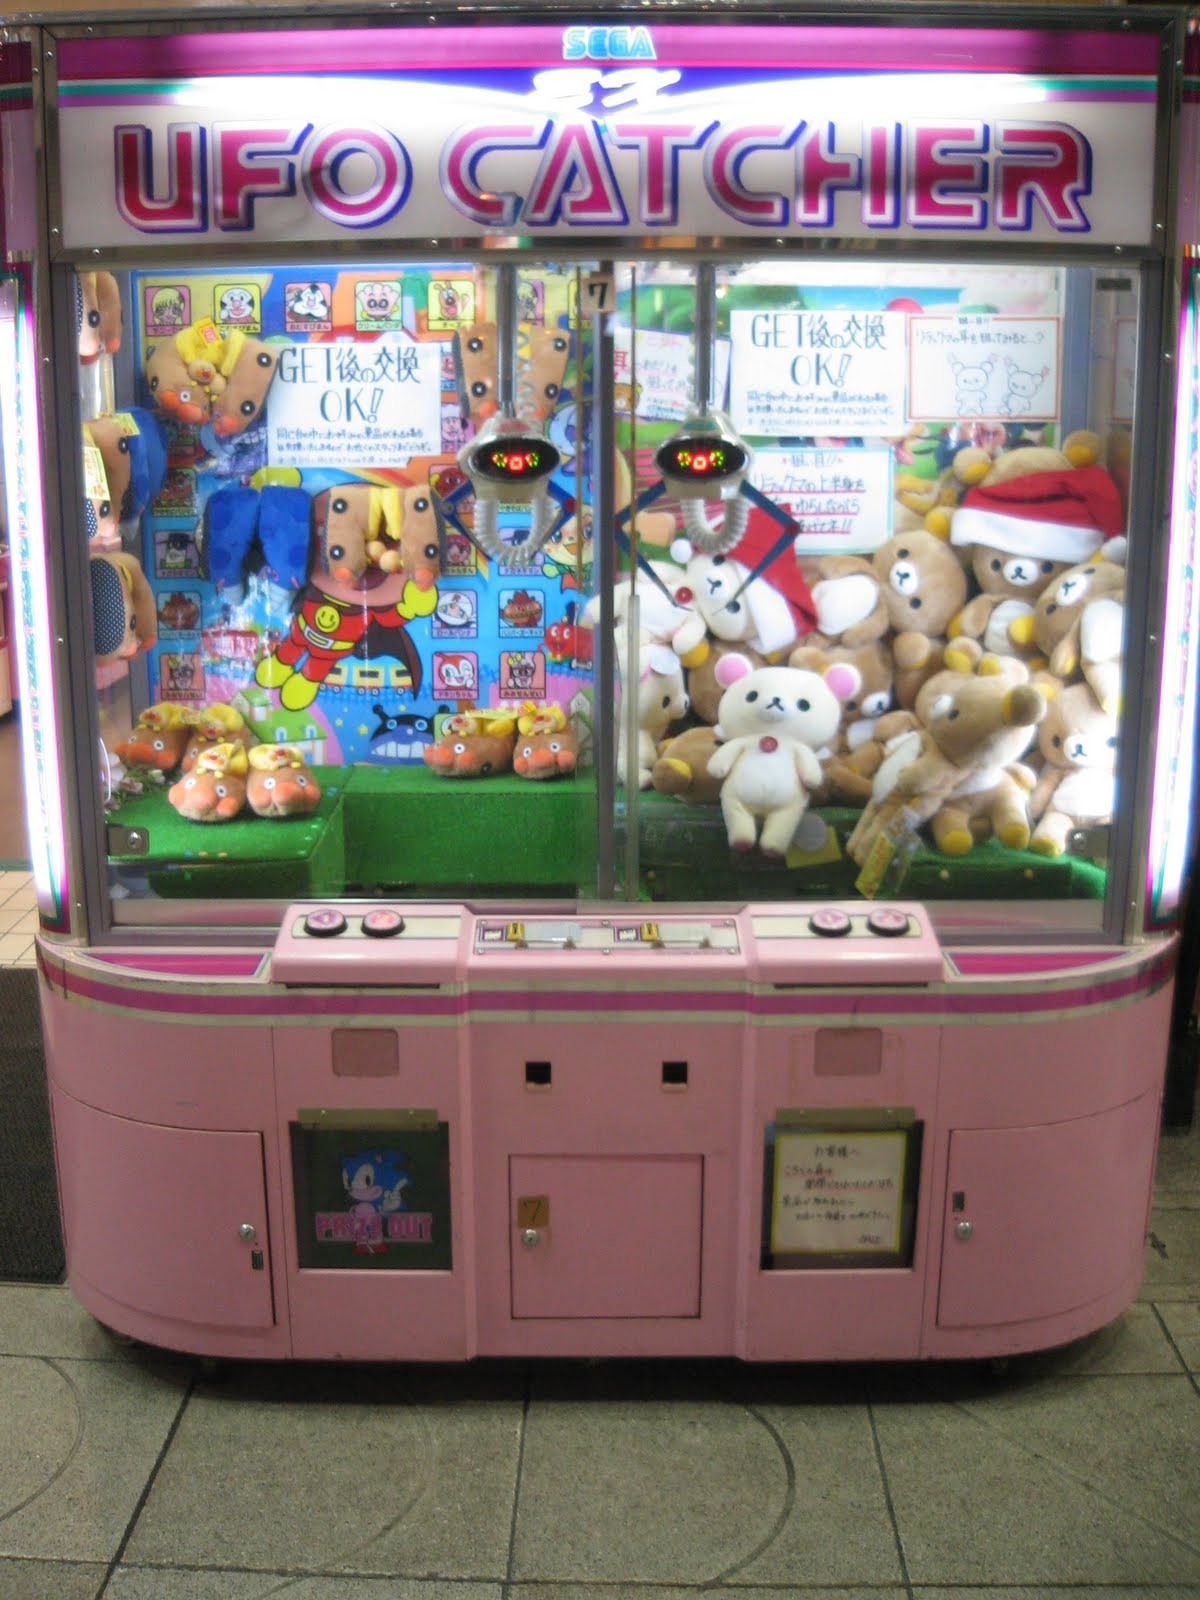 Culture and tradition from Japan: UFO catcher - crane game - photo#12